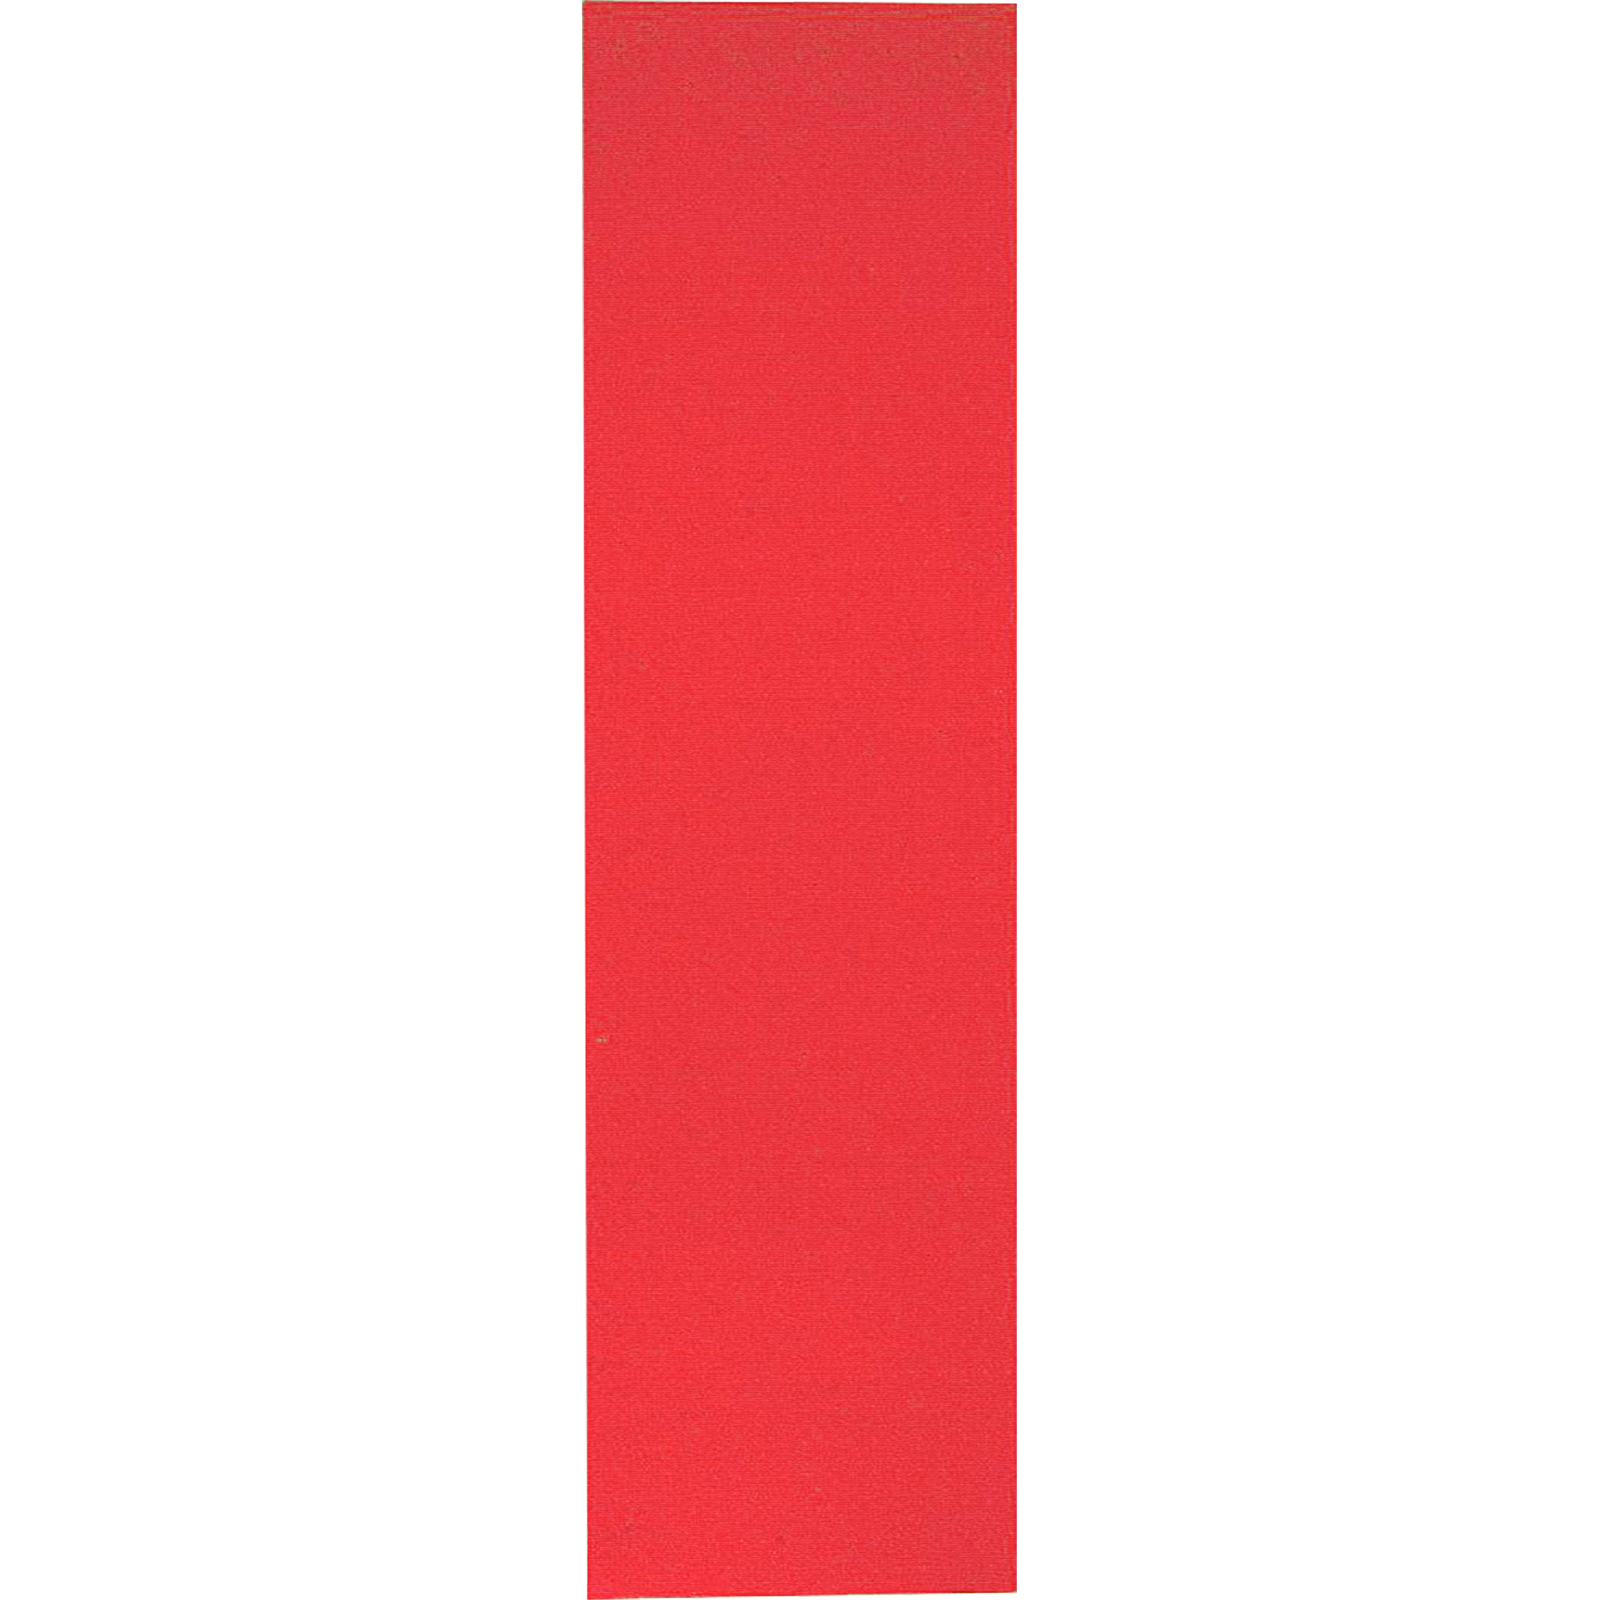 PIMP GRIP SINGLE SHEET-PANIC RED